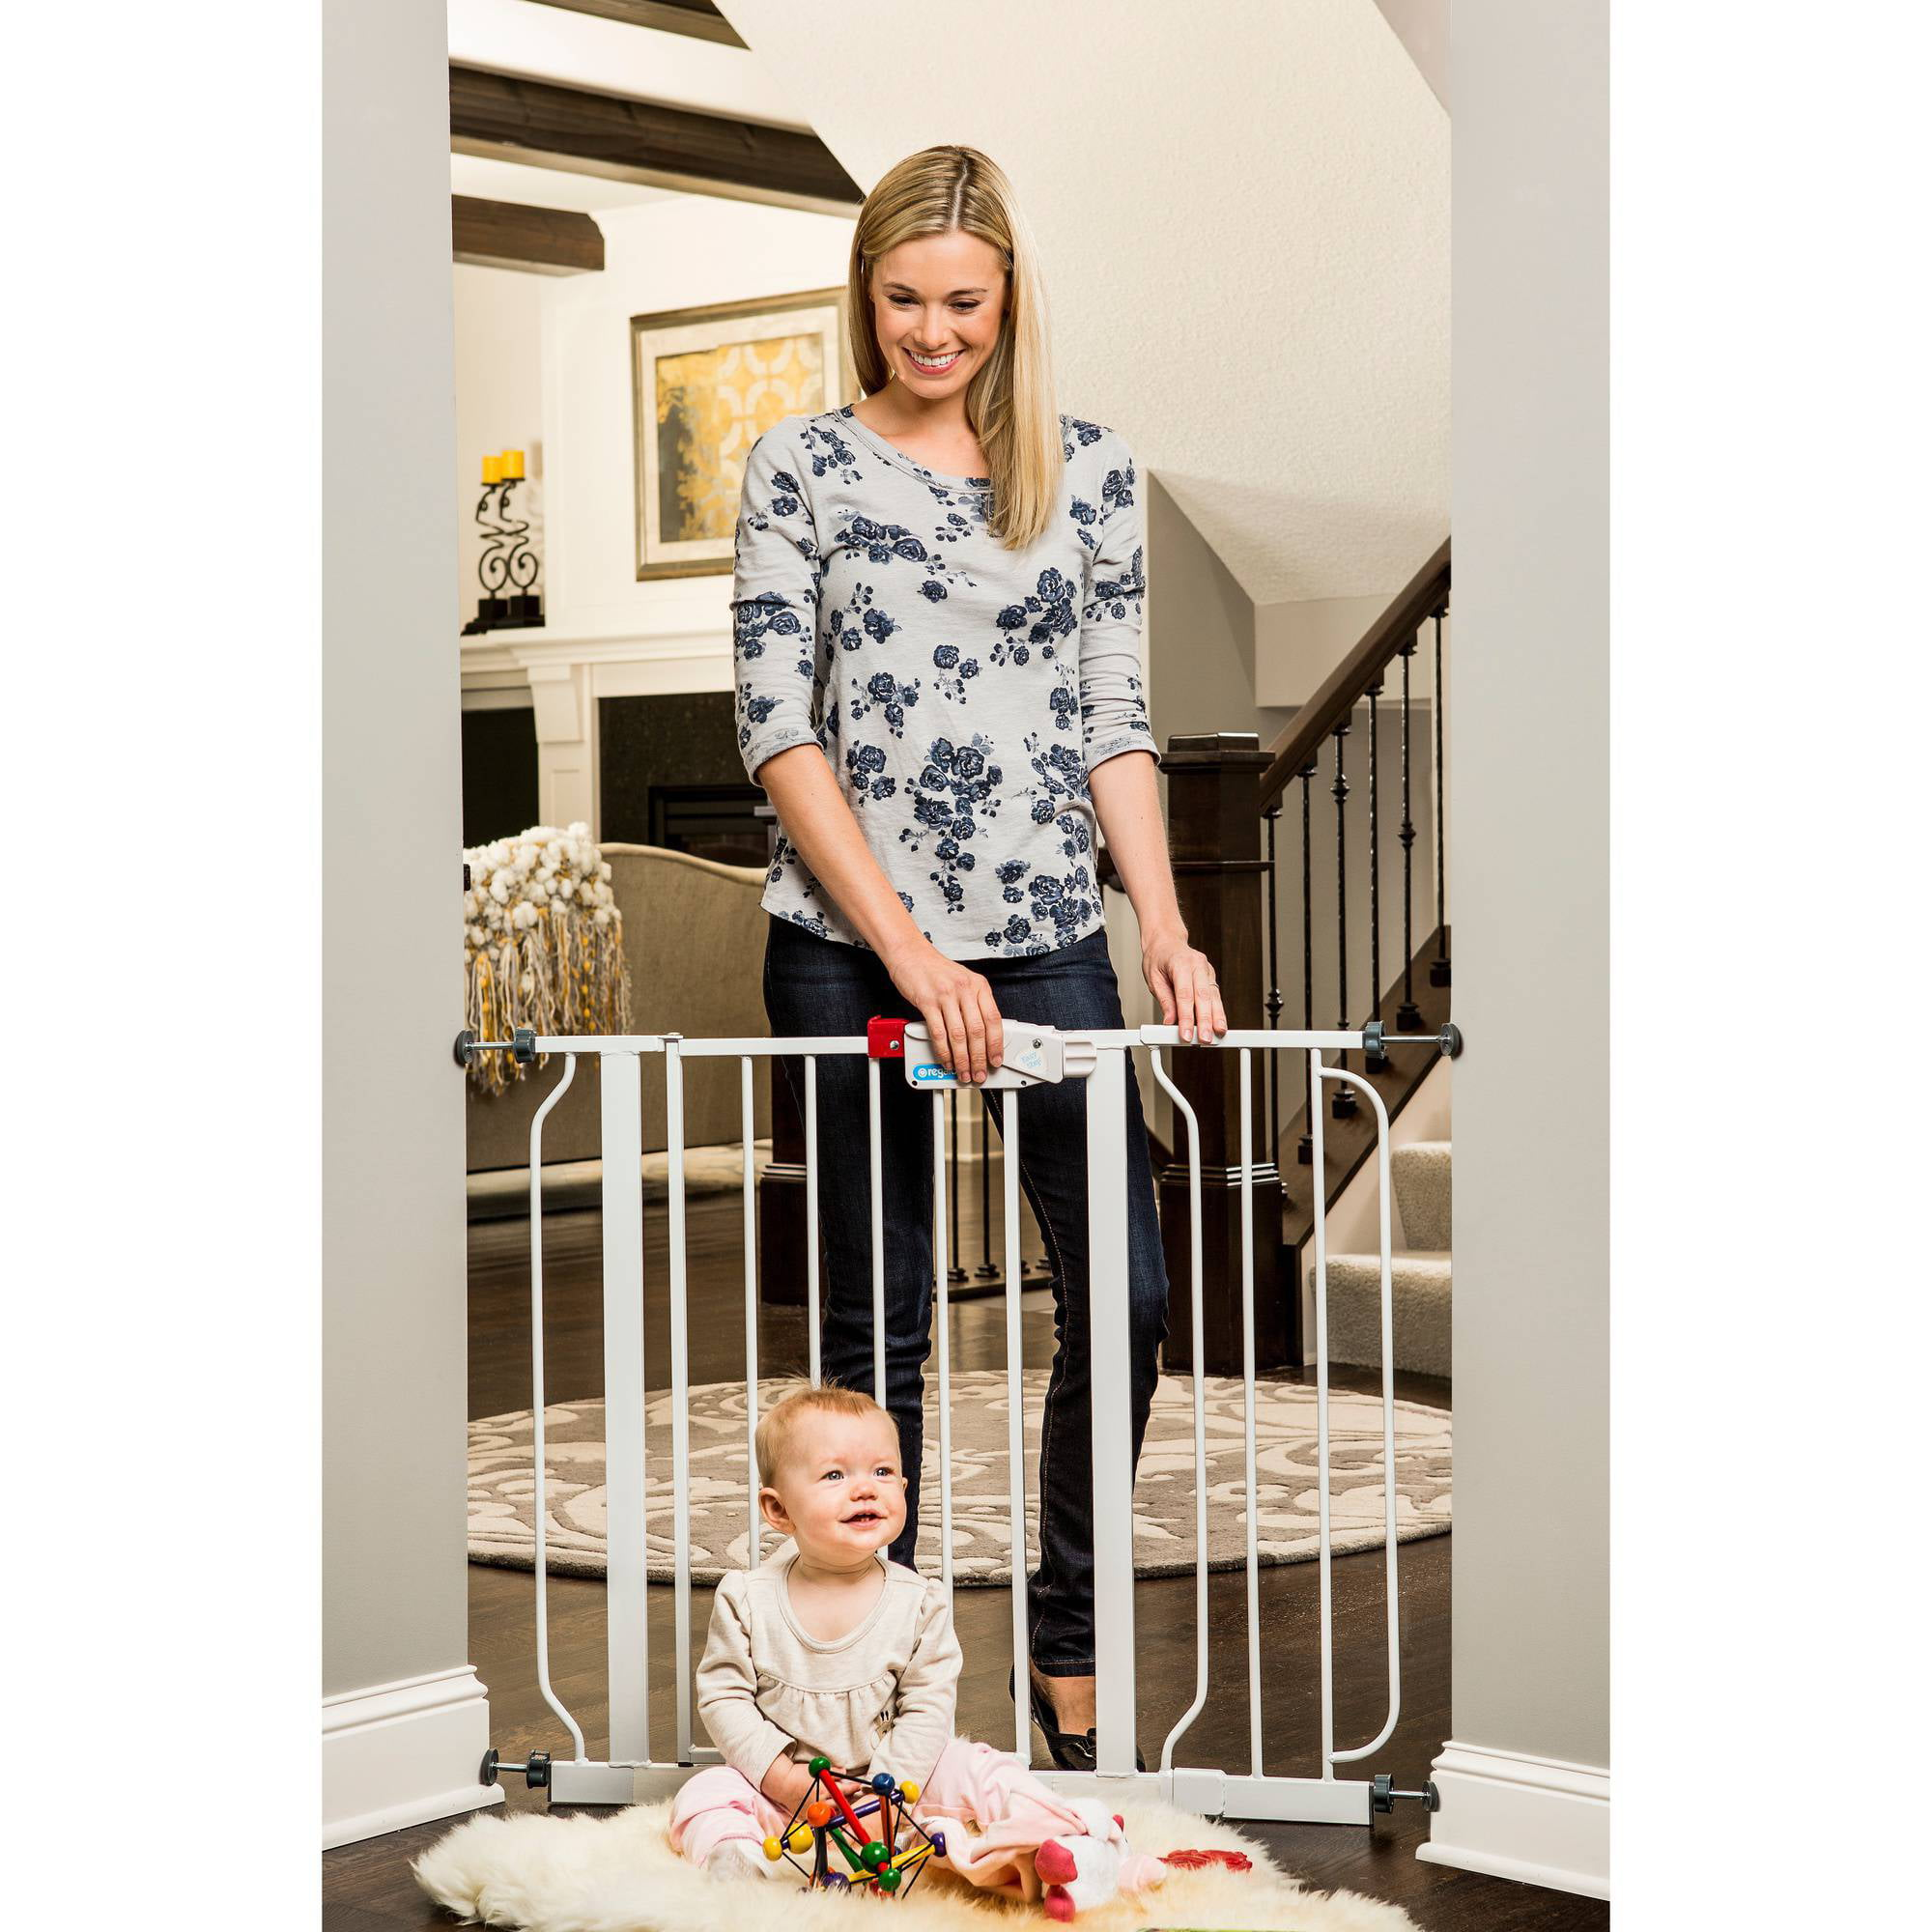 Regalo Easy Step Walk Through Baby Gate Pressure Mount with Included Extension Kit - Walmart.com  sc 1 st  Walmart : baby doors - pezcame.com